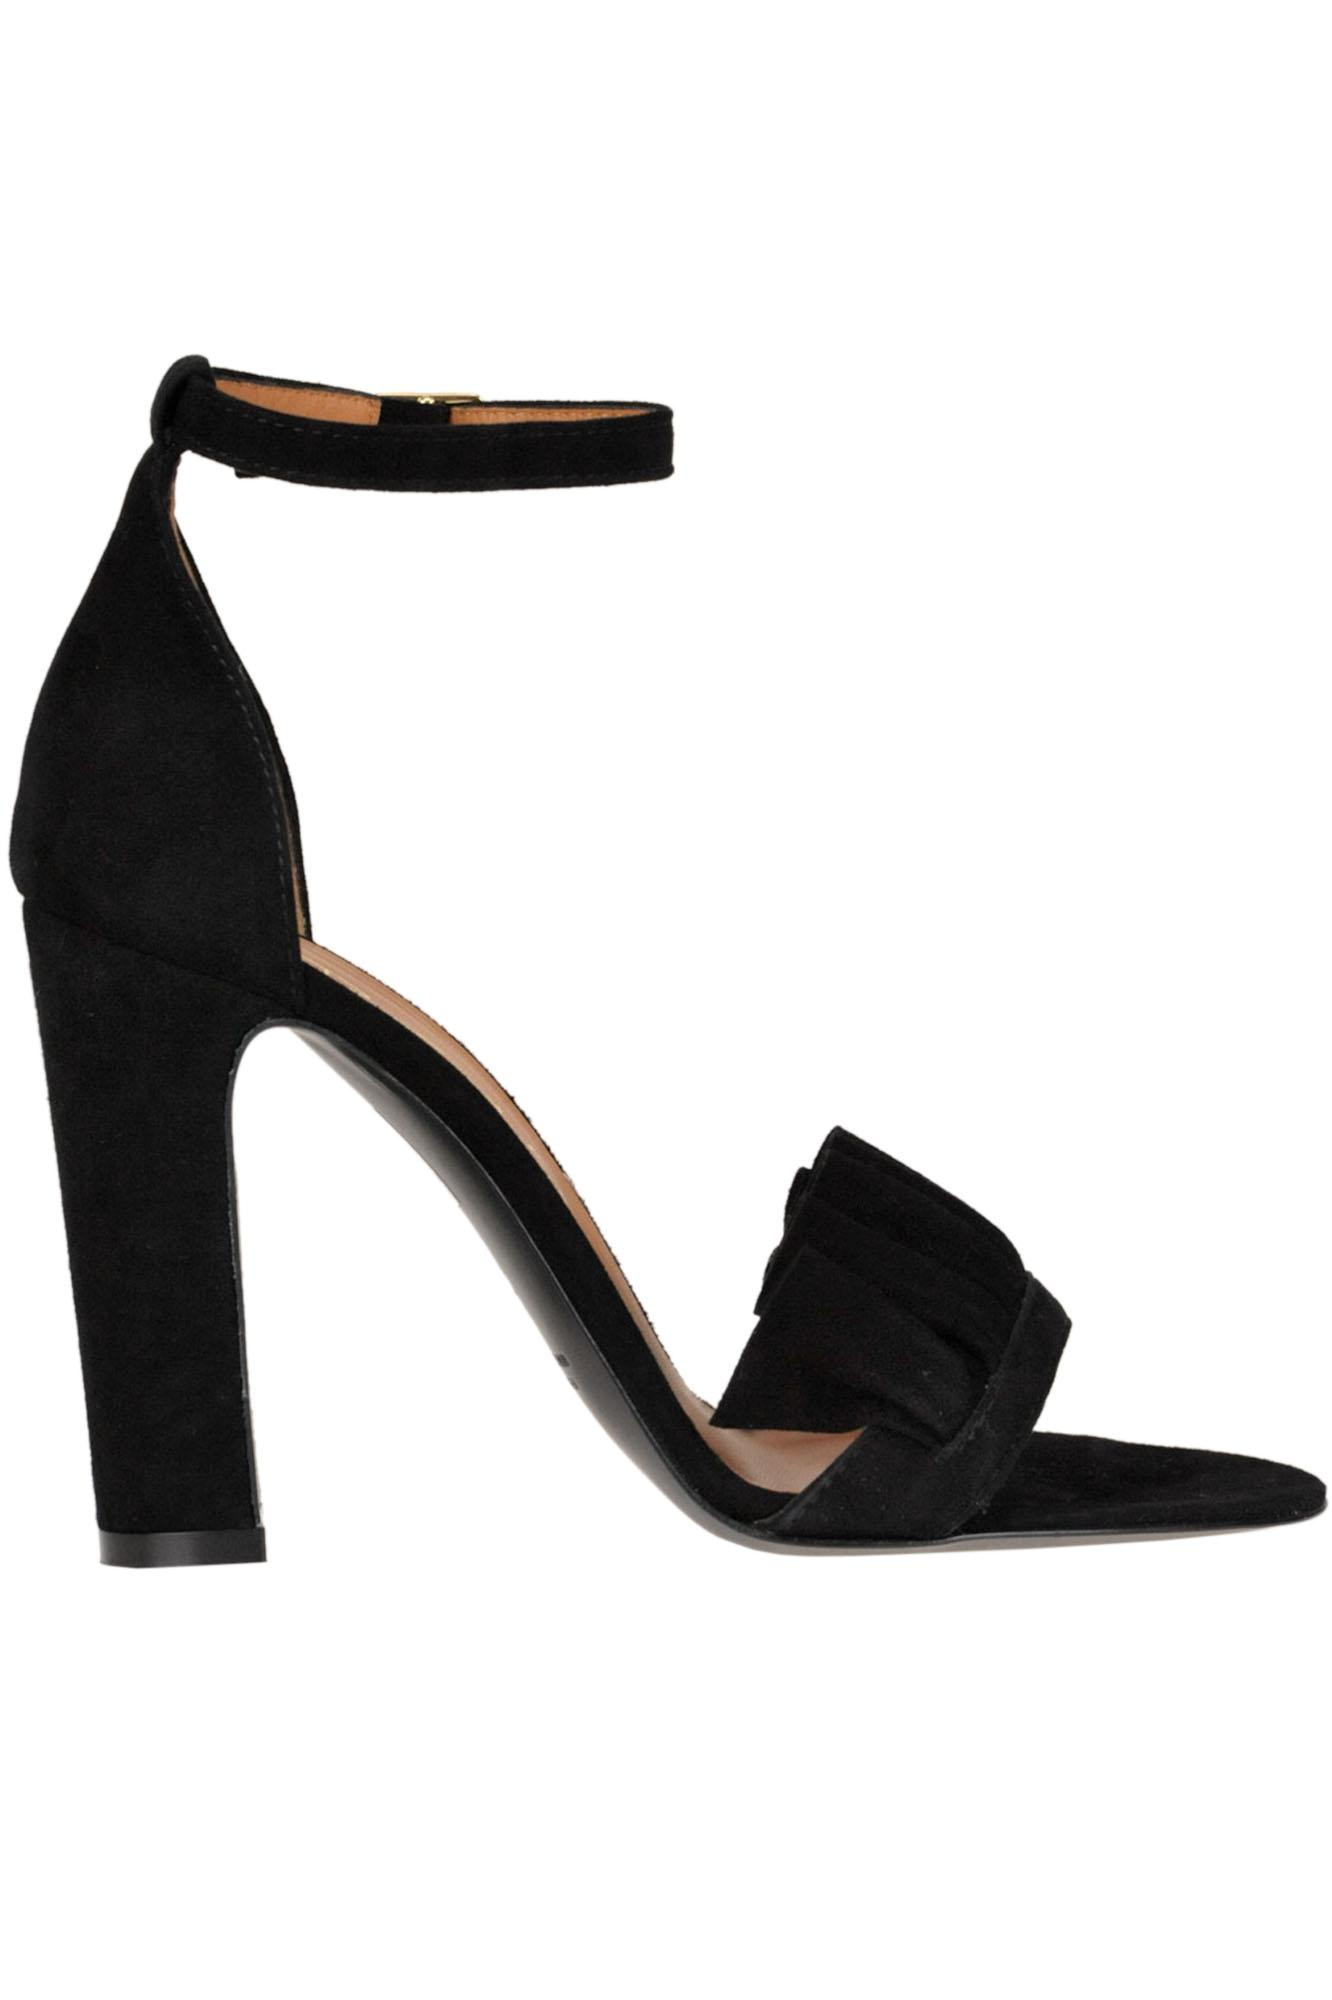 f9763363ac906 Lyst - Via Roma 15 Suede Sandals in Black - Save 21%